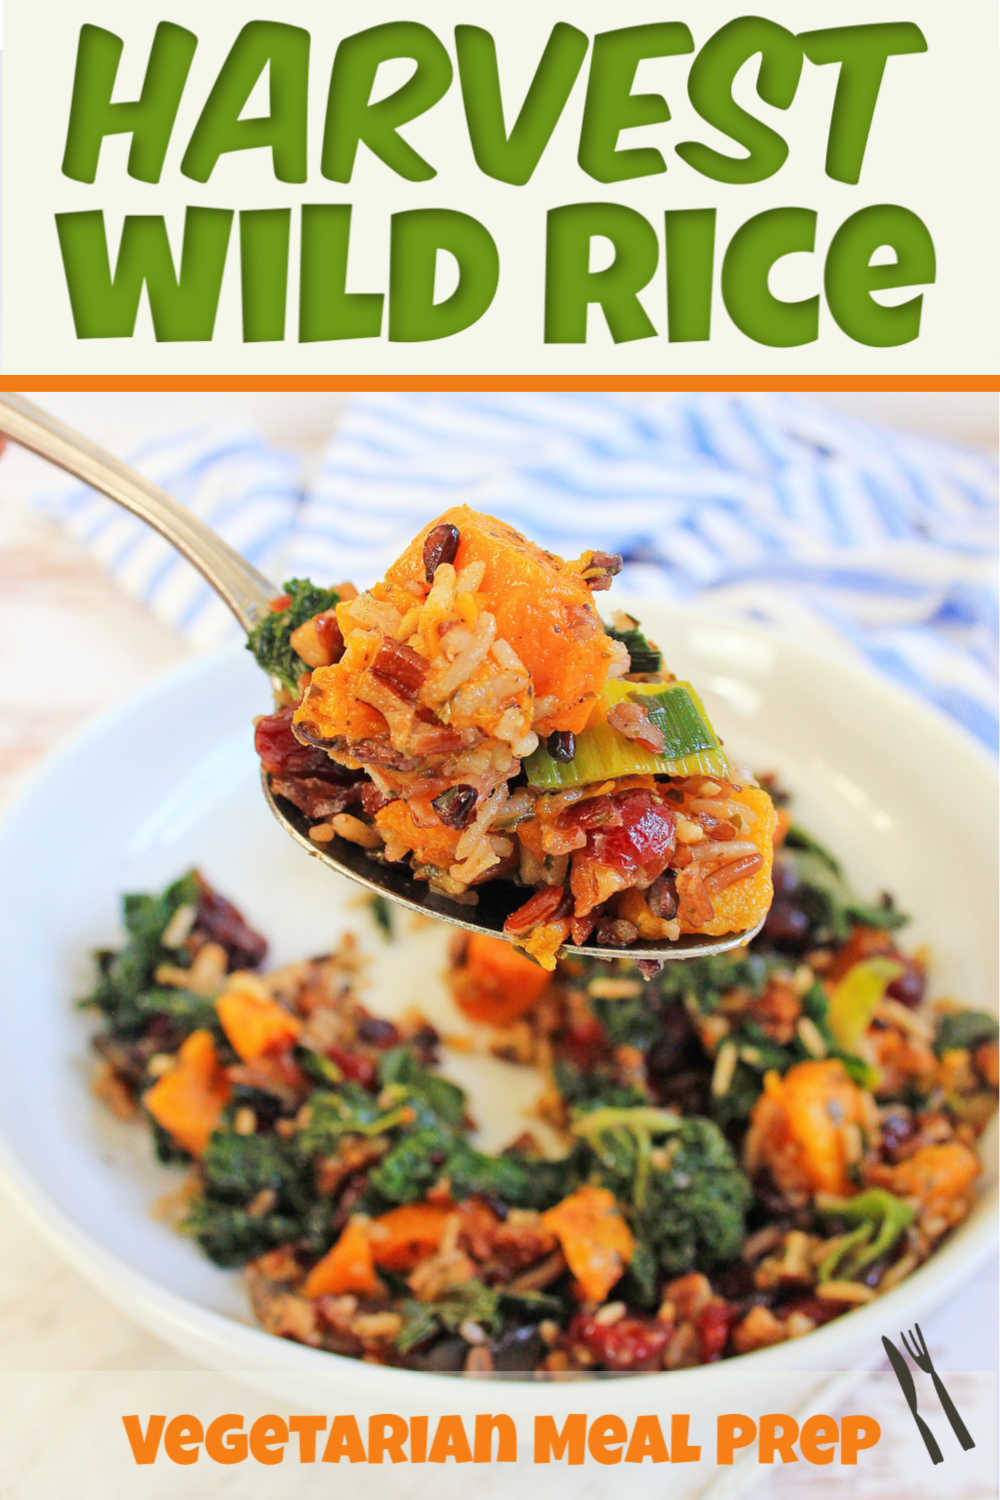 Scrumptious Harvest Wild Rice Recipe filled with sweet potatoes, kale, basmati and wild rice. This vegetarian meal can be made vegan with a simple butter substitute. Healthy and Filling! #WildRice #Vegetarian #Vegan